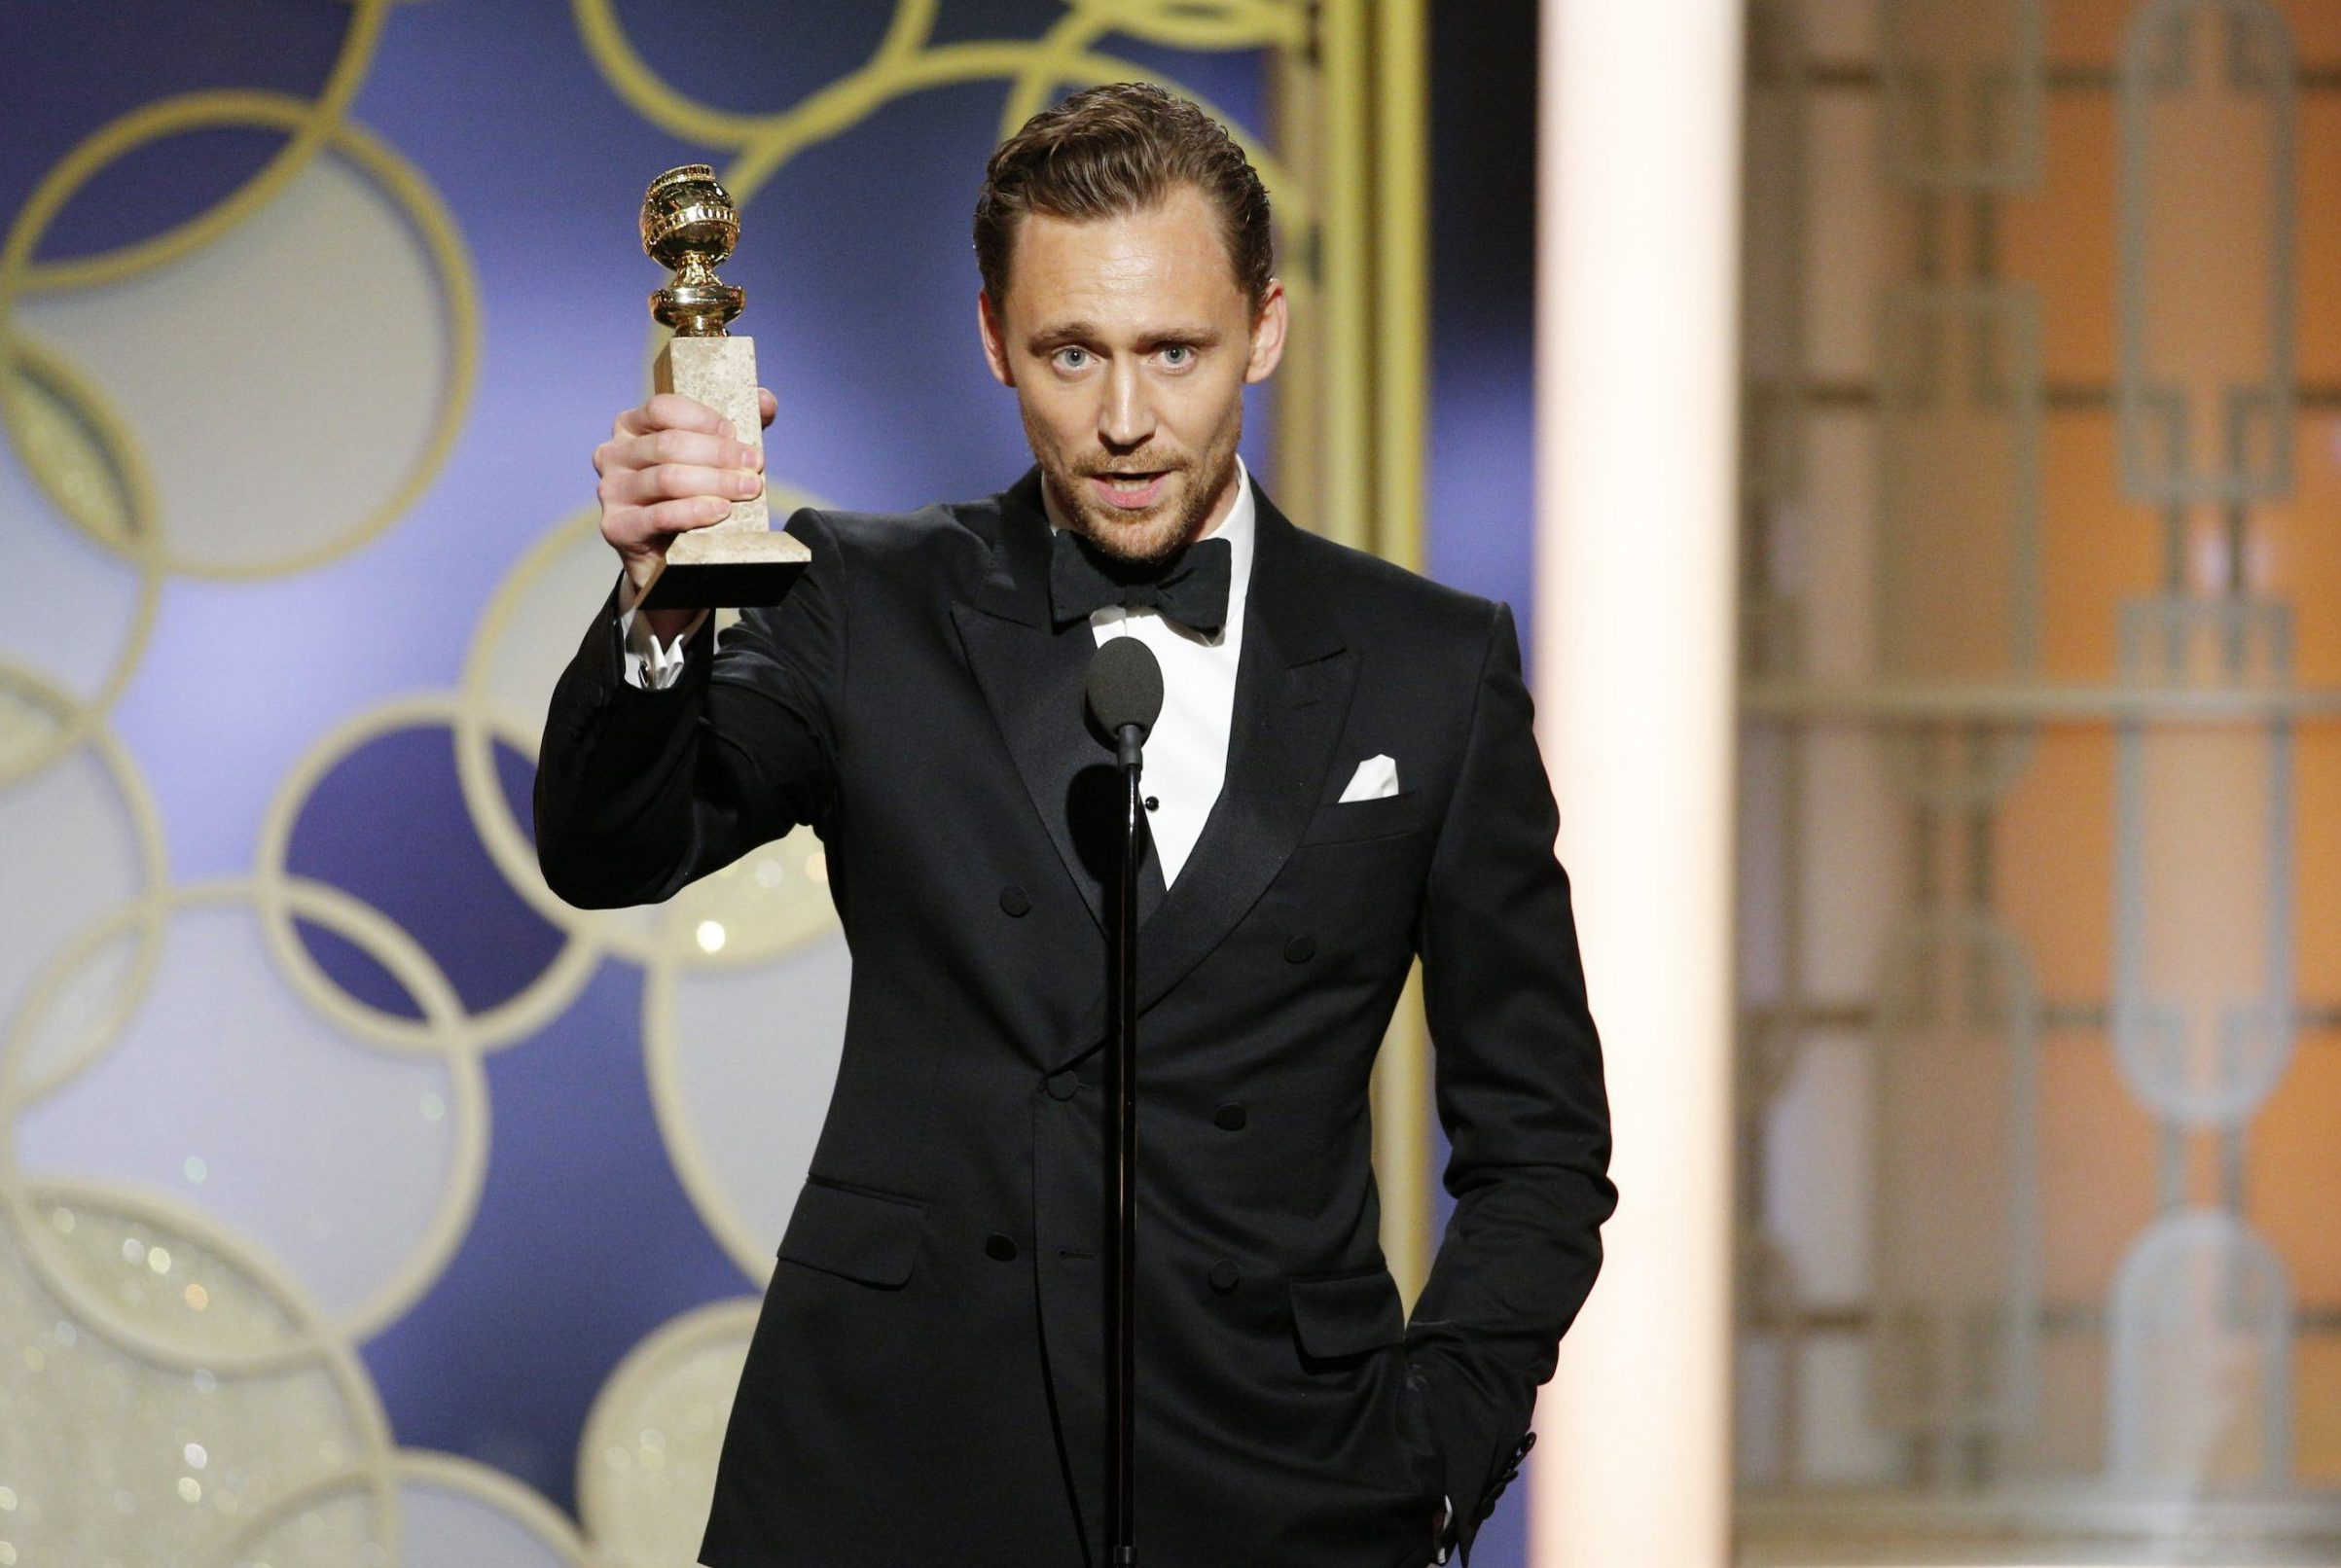 Tom Hiddleston pens Facebook apology for his 'confusing' Golden Globes speech and says he was 'very nervous'